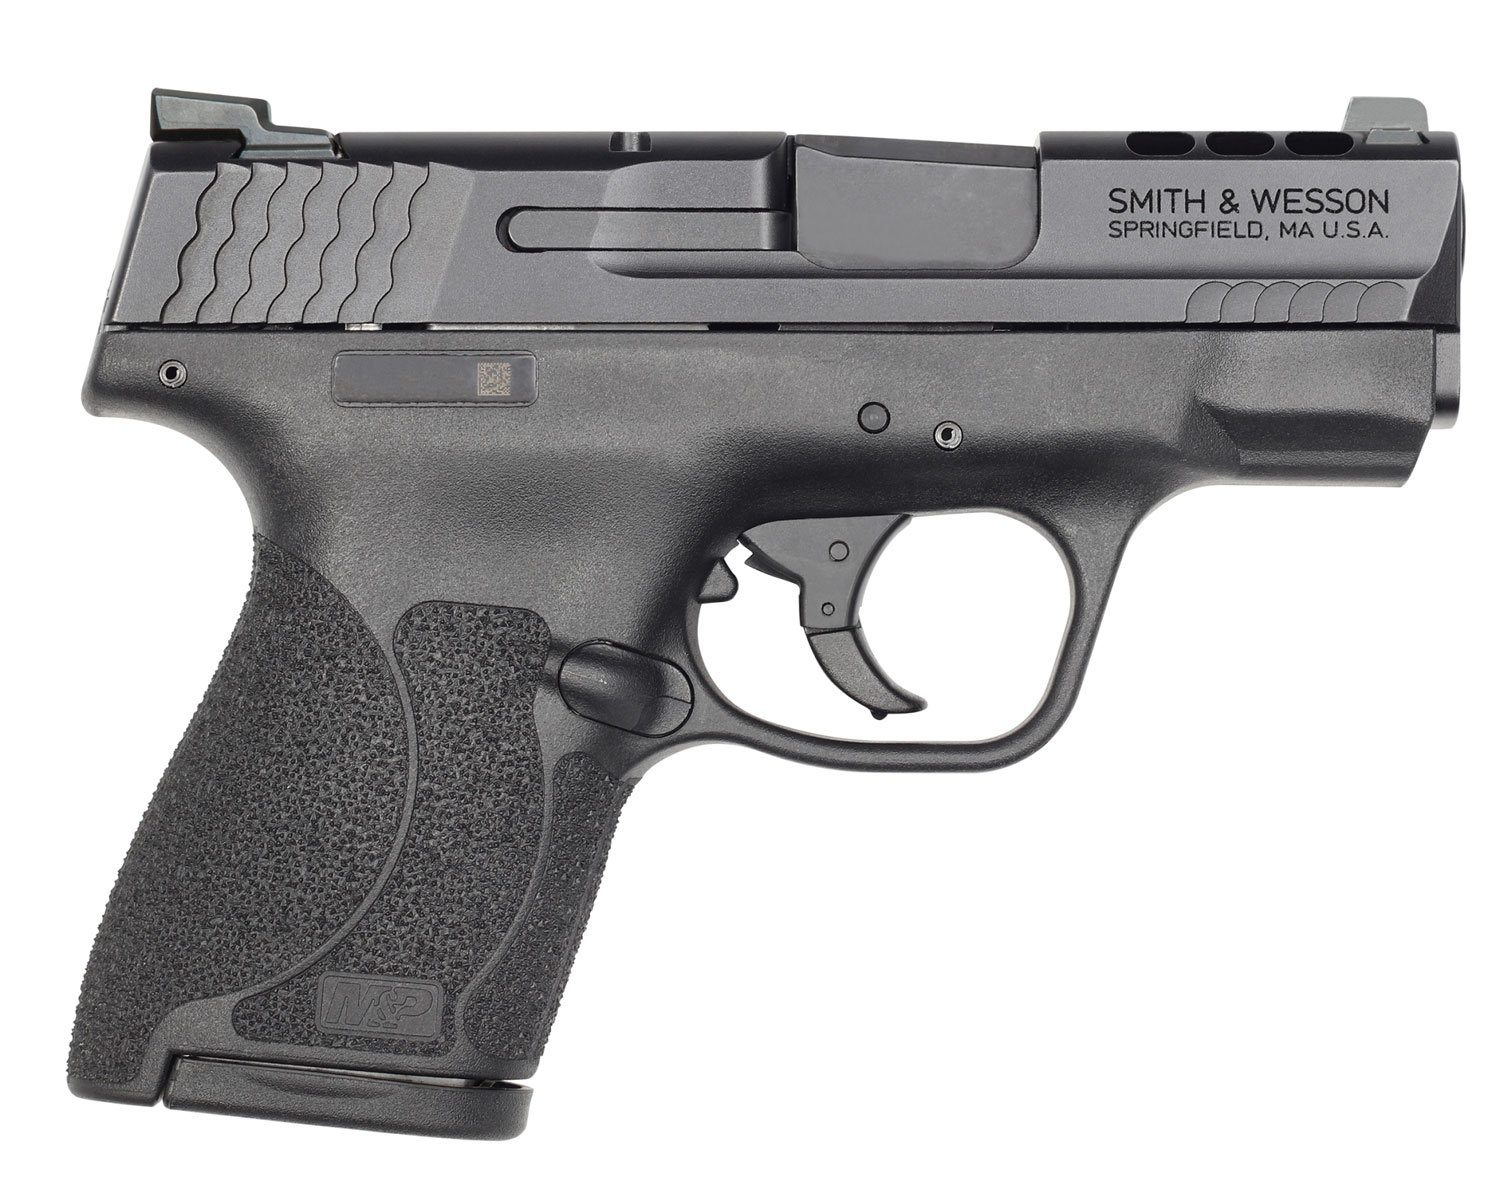 Smith & Wesson 11869 M&P Performance Center M2.0 9mm Luger Double 3.1